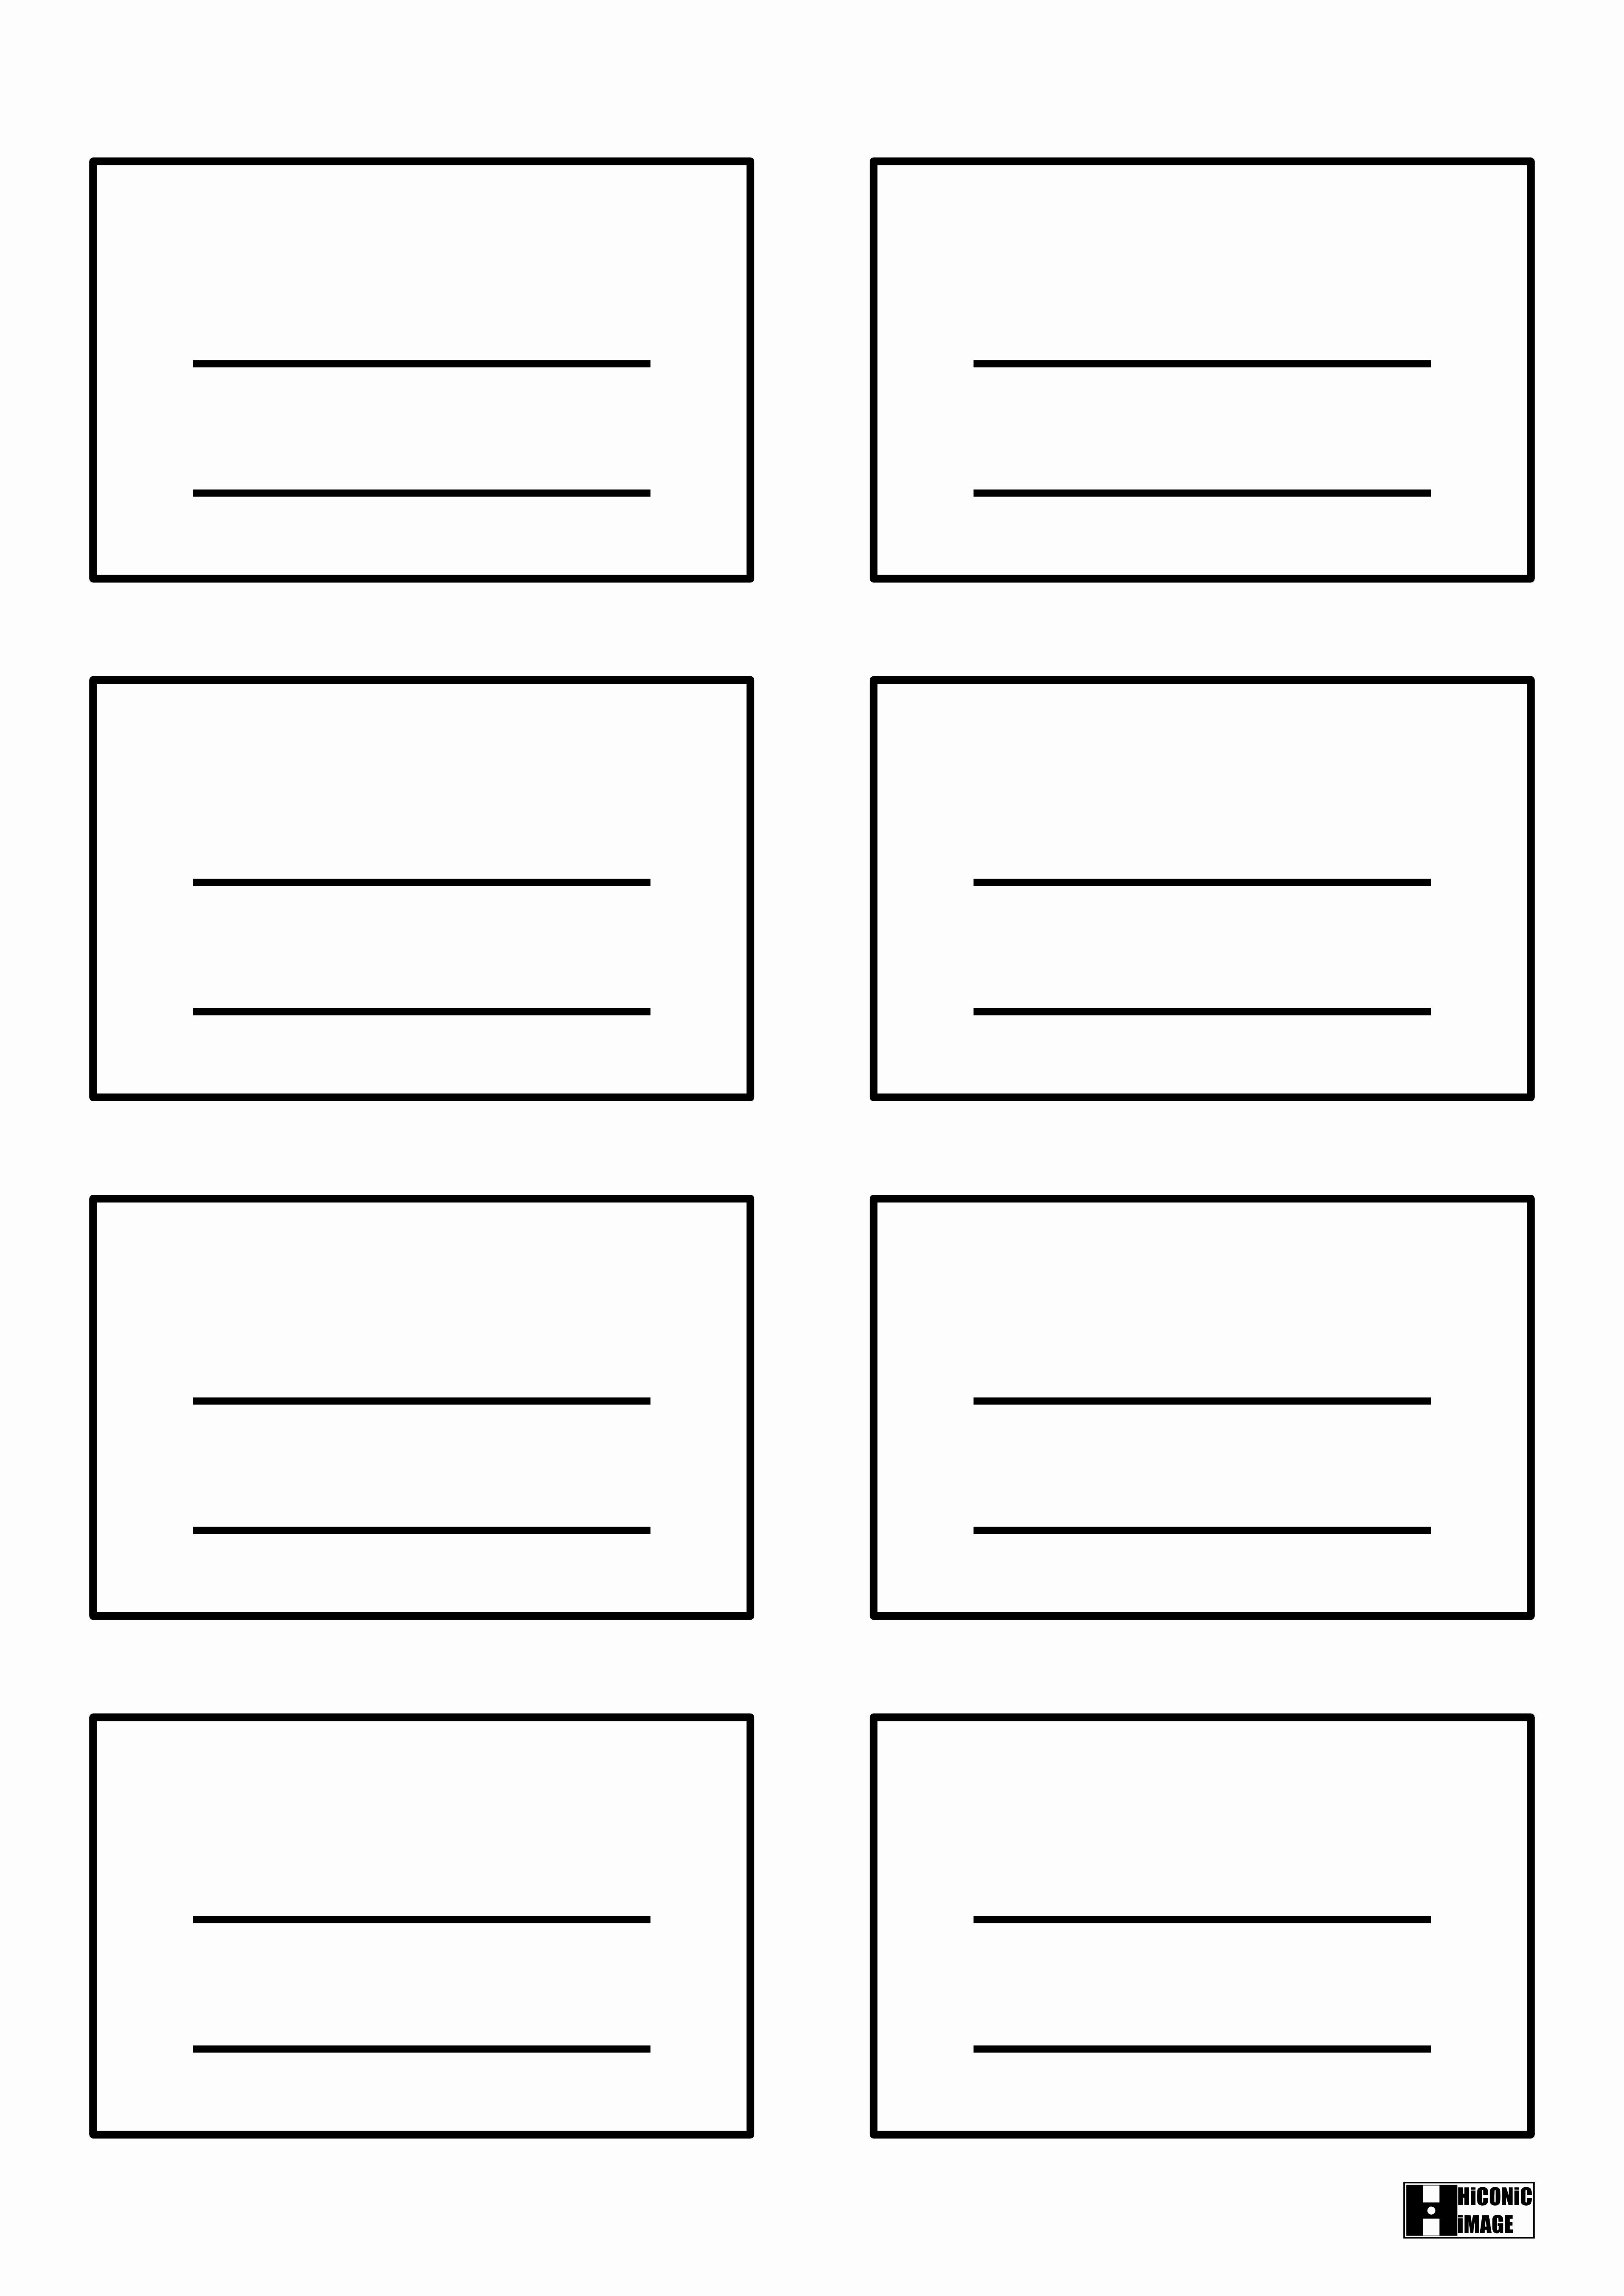 Word Flash Card Template Inspirational Flash Card Template Word Gallery Professional Report Business Card Template Word Note Card Template Blank Business Cards